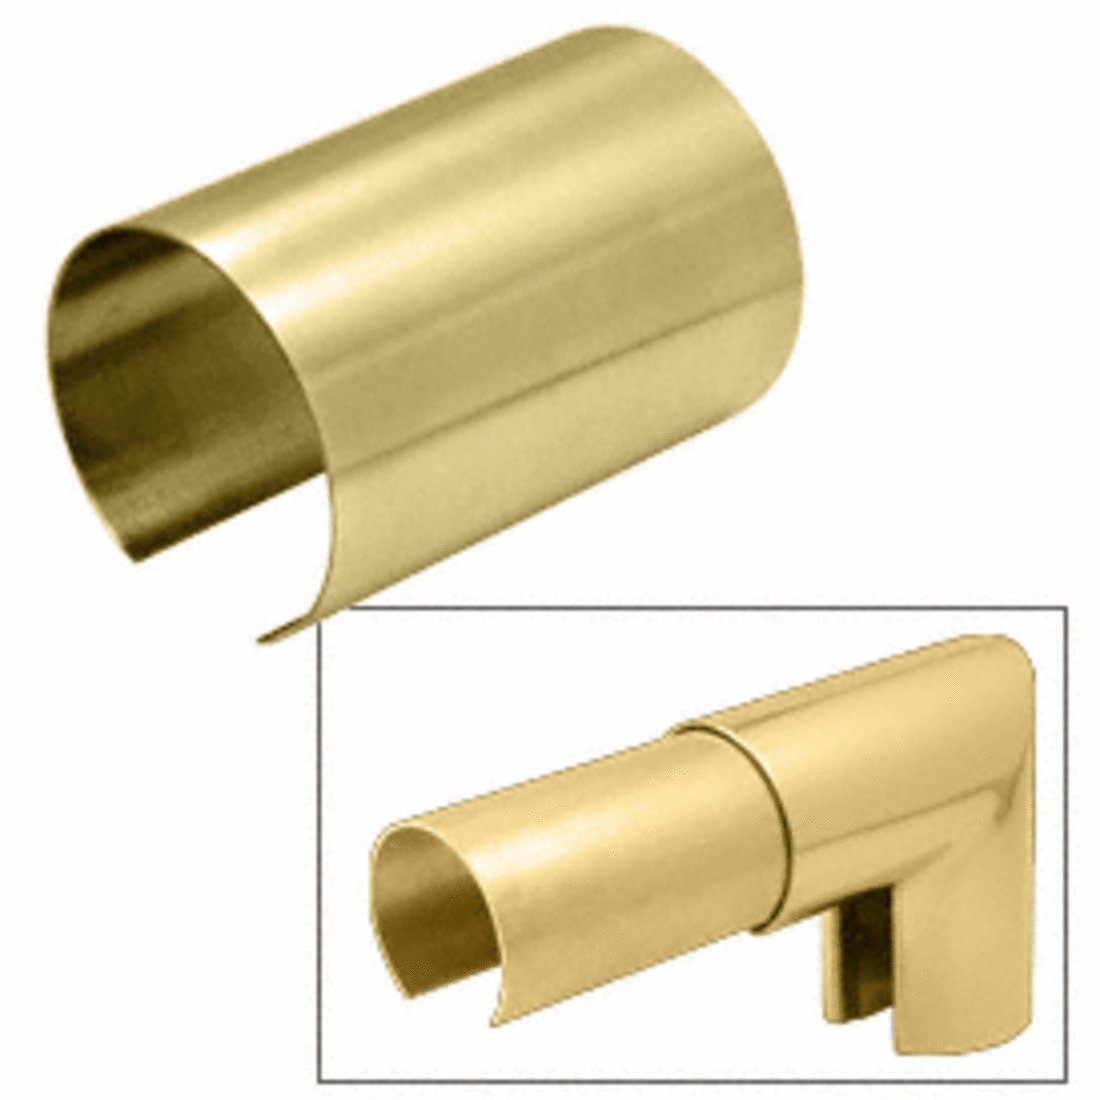 C.R. LAURENCE GR40CSB CRL Brass 4'' Connector Sleeve for Cap Railing, Cap Rail Corner, and Hand Railing